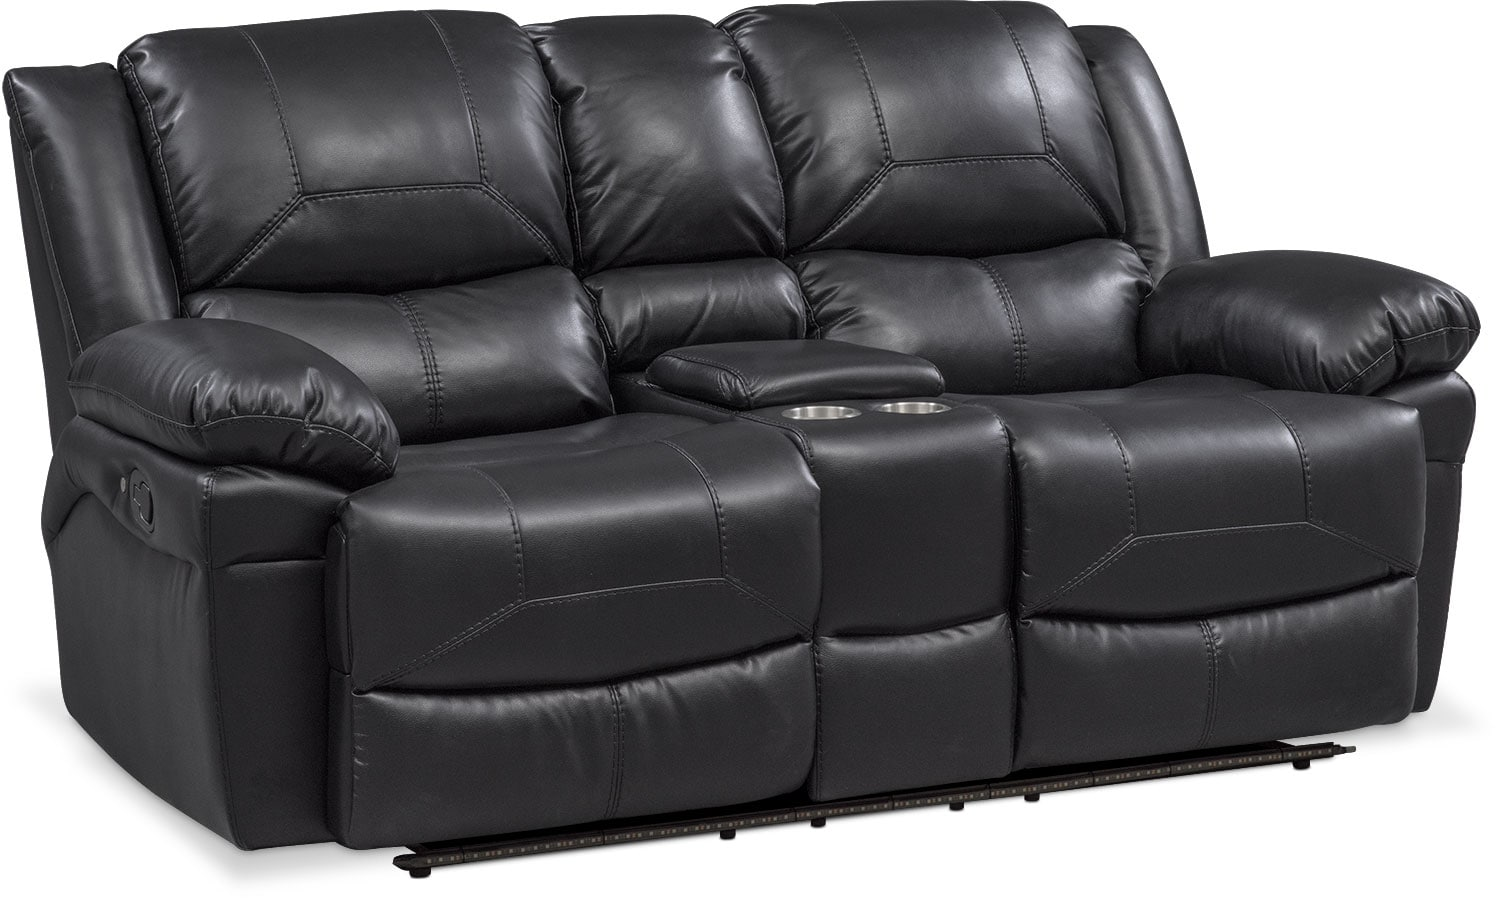 power rocking topic recliner chair livingroom to chairs related reclining value furniture recliners city rockers sofa